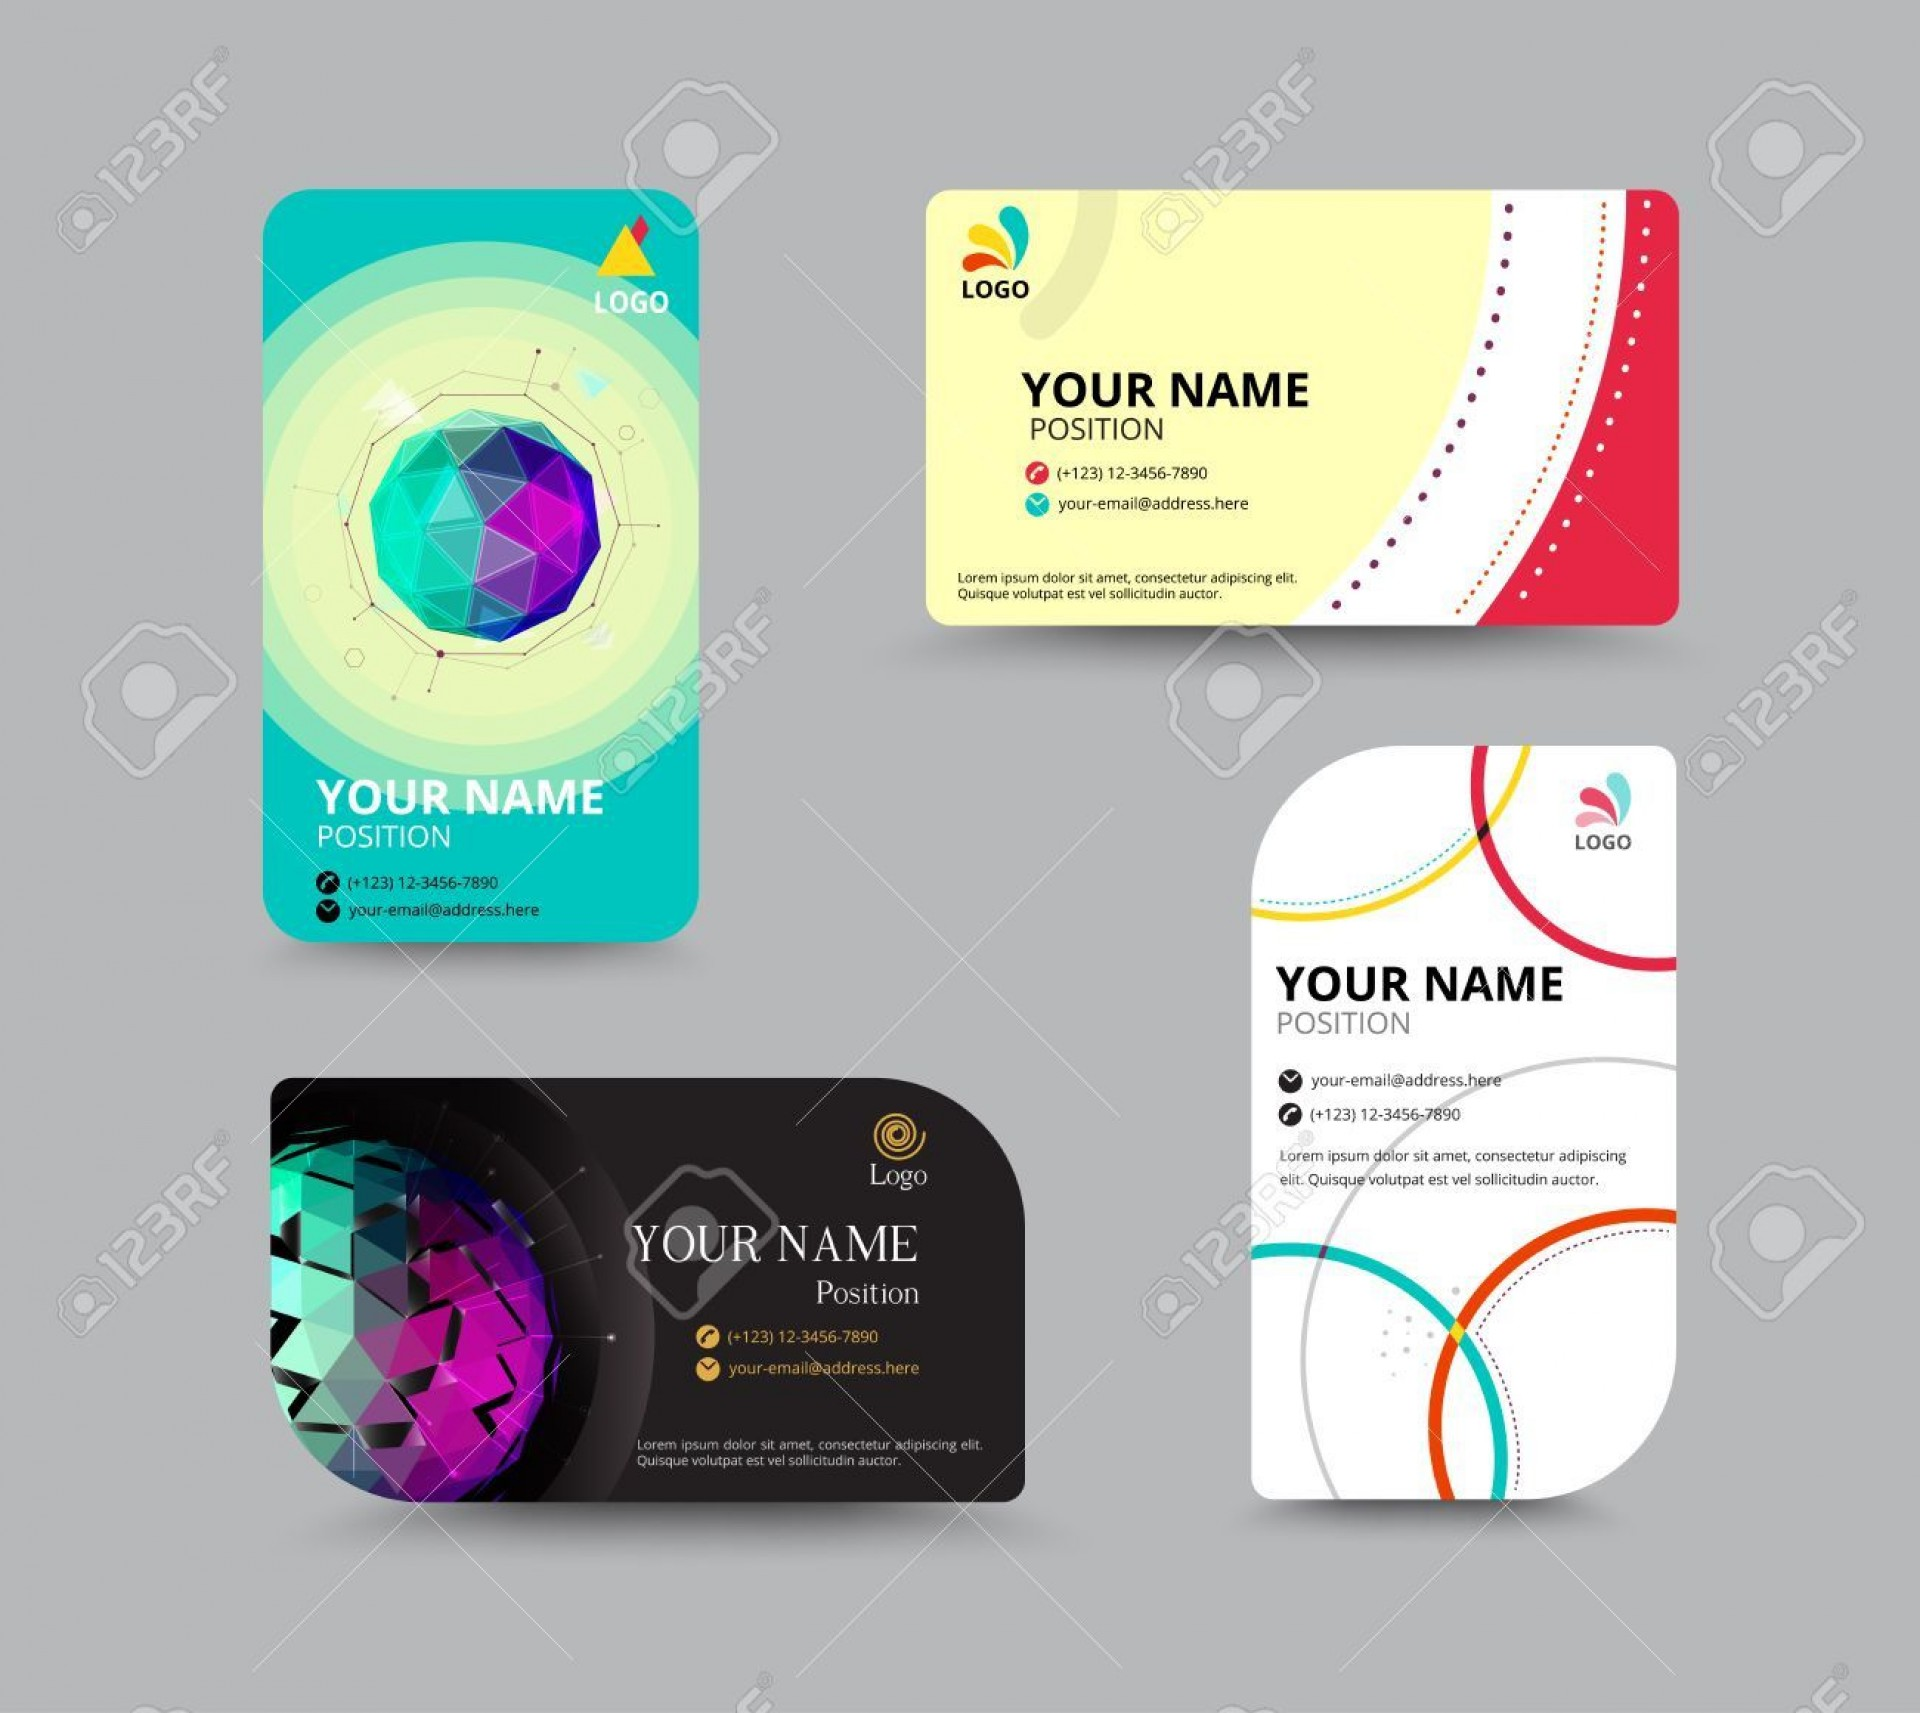 000 Fascinating Name Tag Design Template High Def  Free Download Psd1920